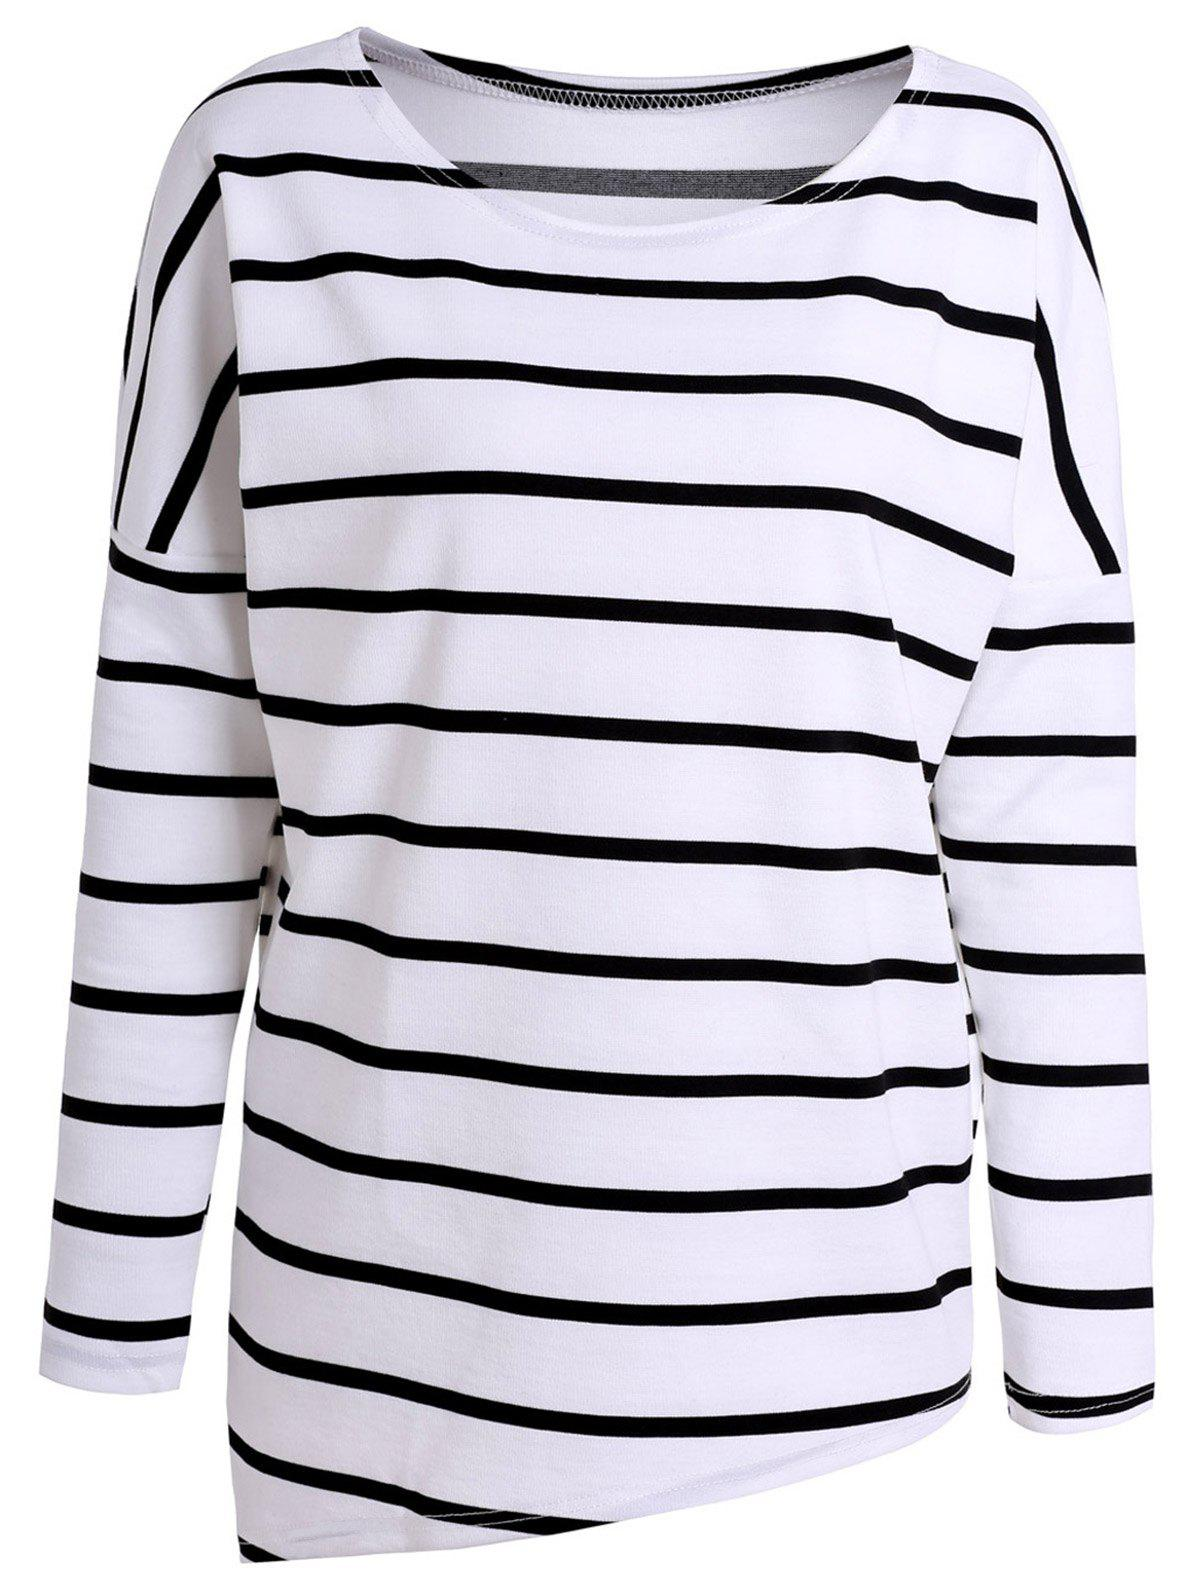 Concise Scoop Neck Long Sleeve Striped T-Shirt For Women - WHITE/BLACK XL